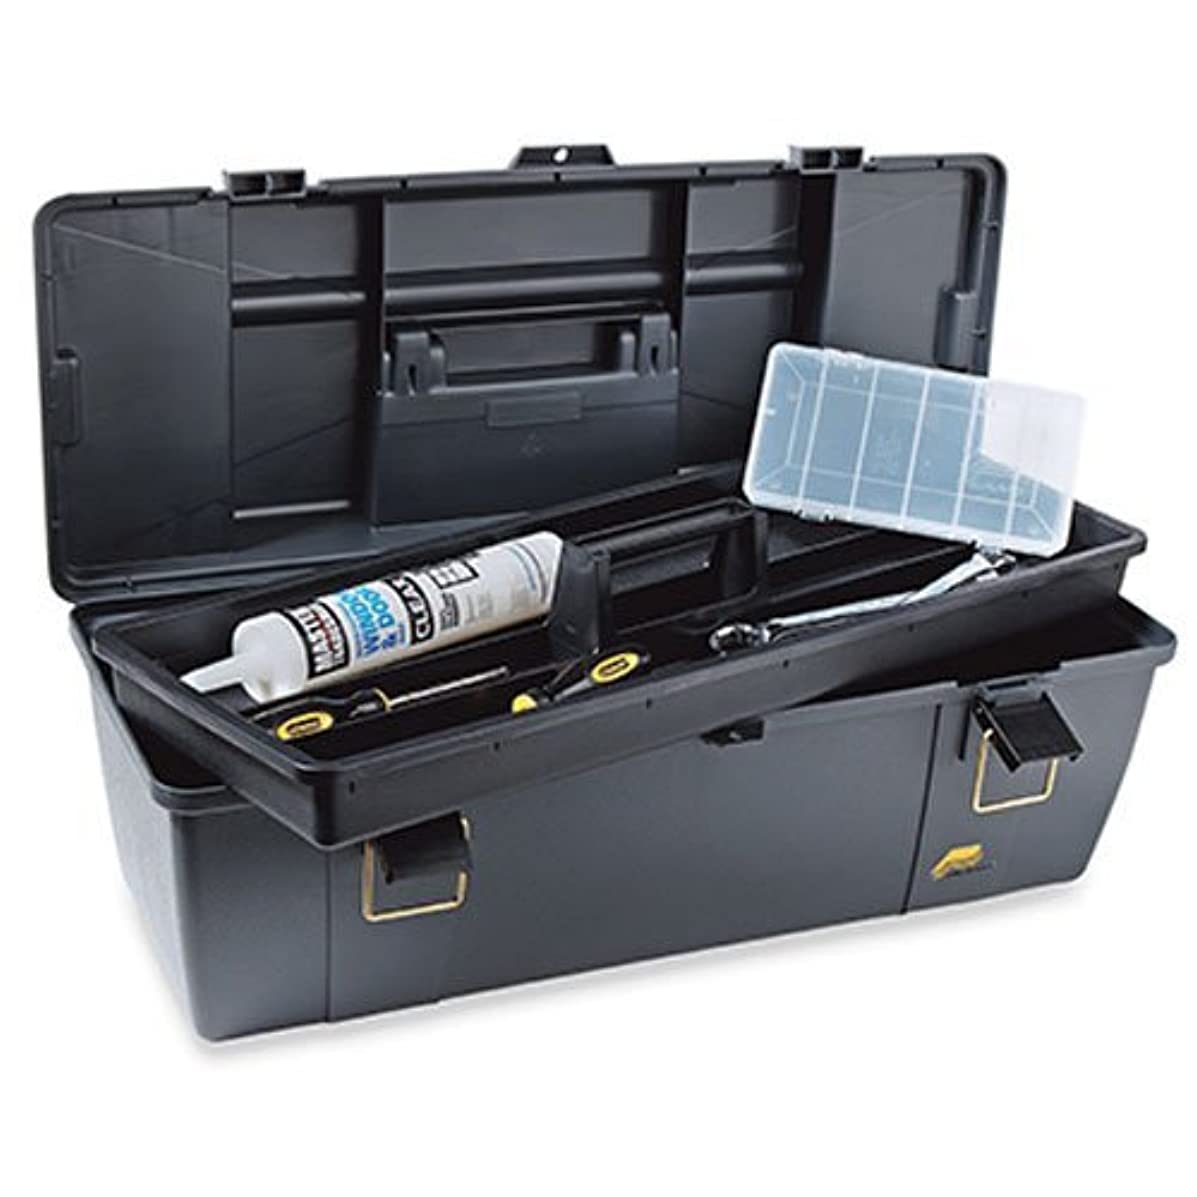 Plano 682-007 Grab-N-Go 26-Inch Tool Box with Tray